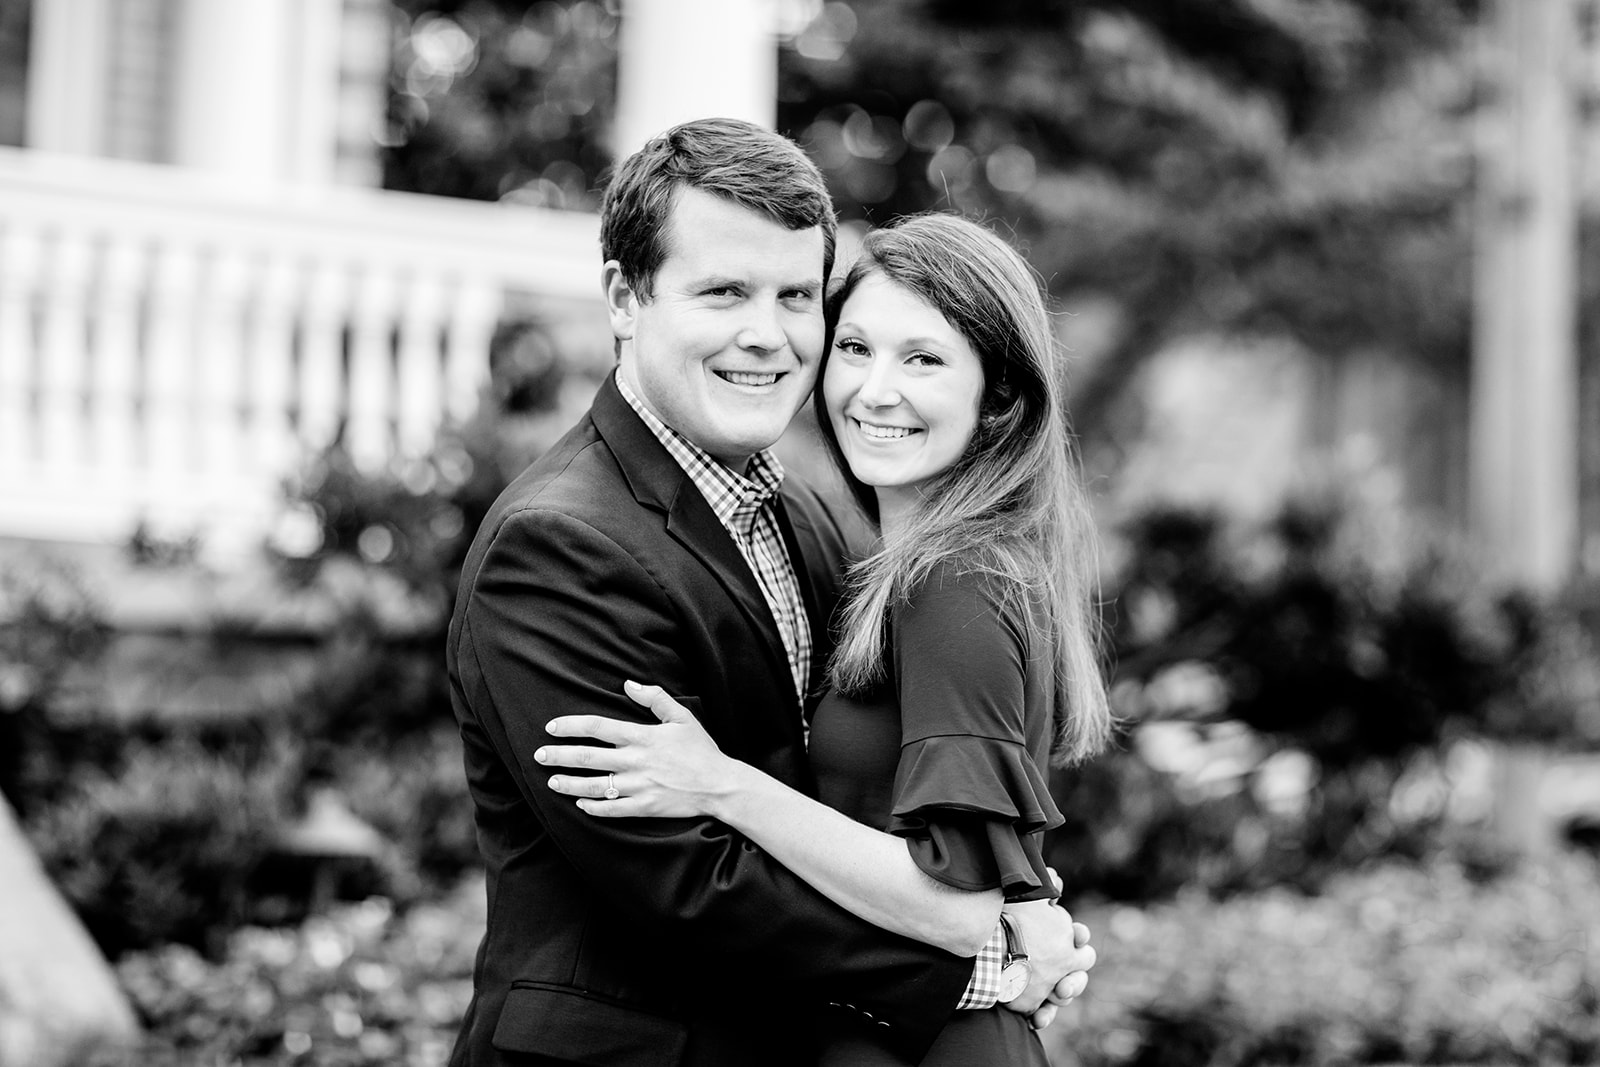 Chris  Allies Engagement Photos on Monument Avenue  - Image Property of www.j-dphoto.com